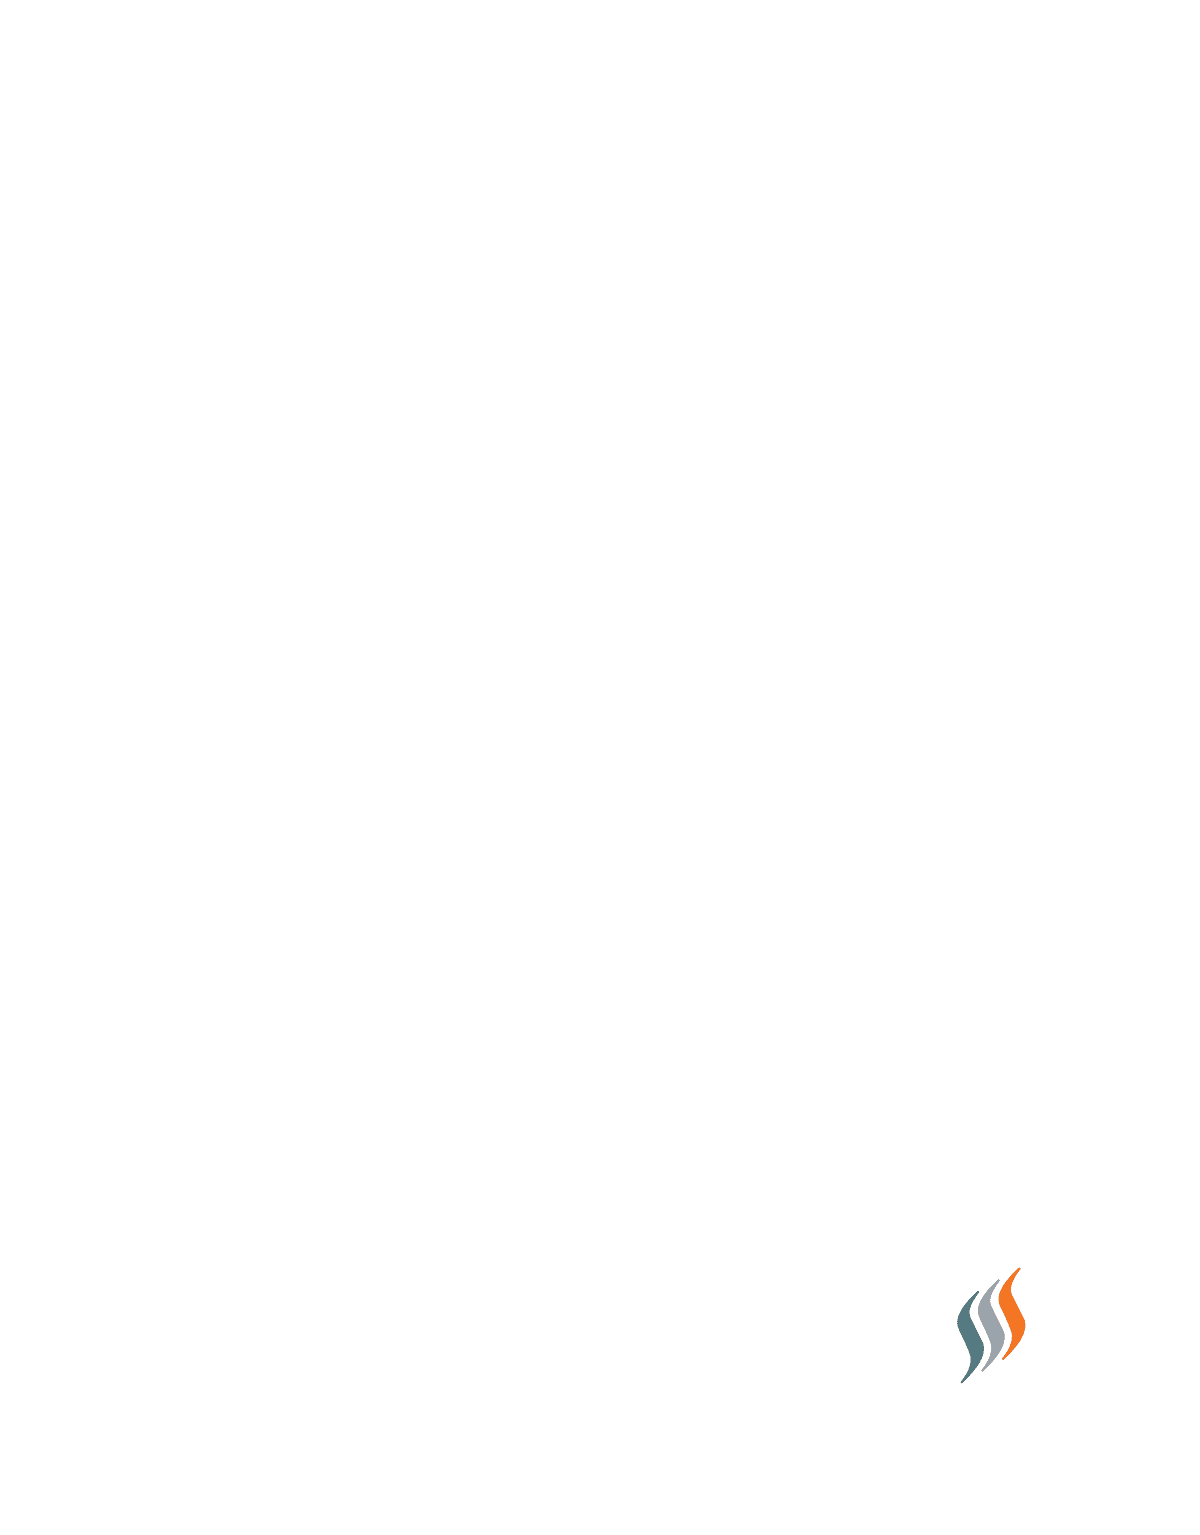 Biohacker Summit – Top optimal human performance conference